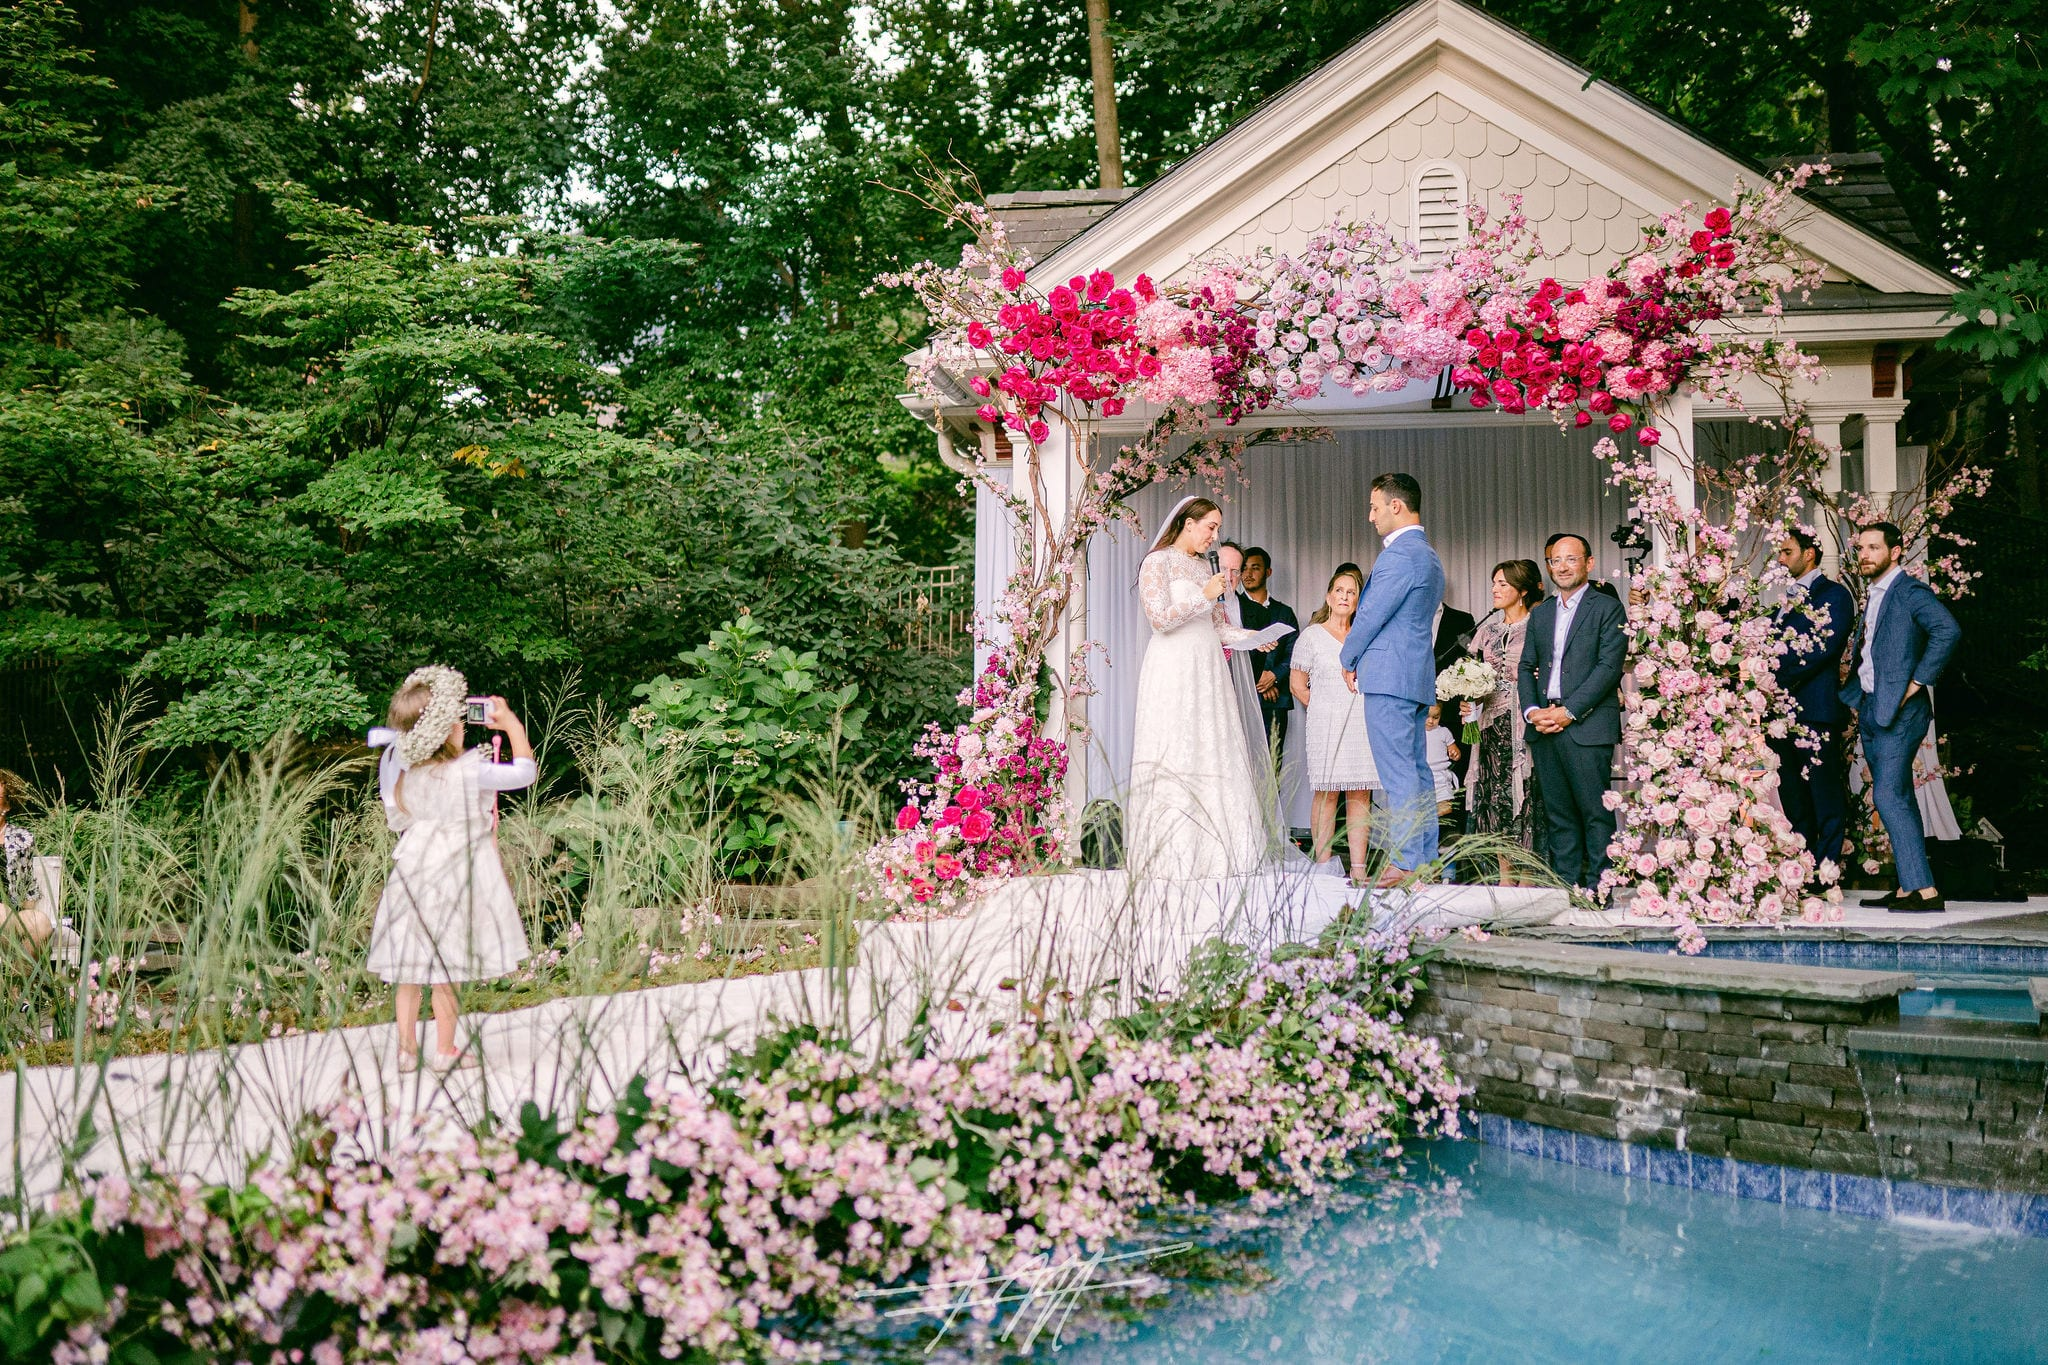 DESTINATION:  HOME! 10 TIPS TO A MICRO WEDDING AT HOME